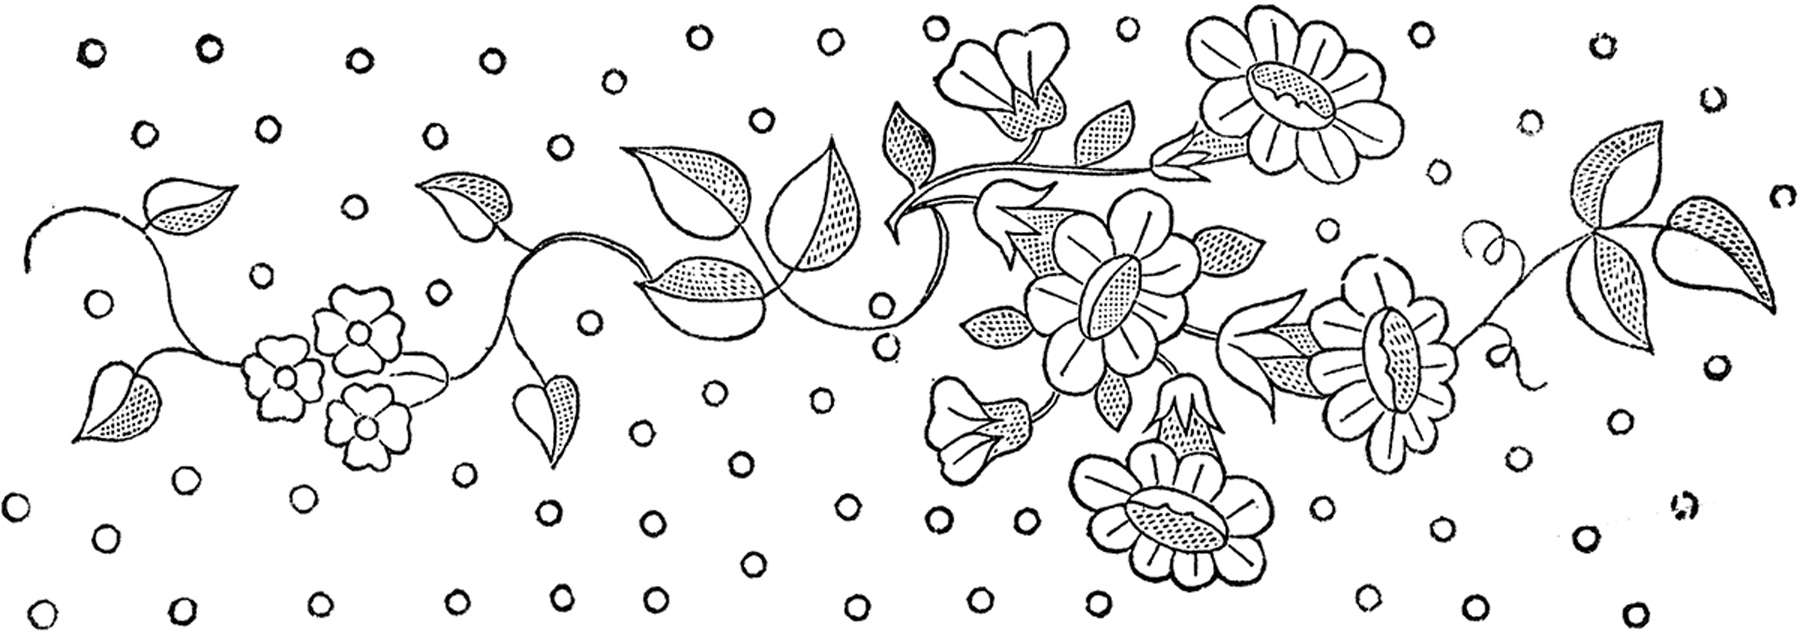 http://thegraphicsfairy.com/wp-content/uploads/2014/10/Floral-Embroidery-Pattern-GraphicsFairy.jpg